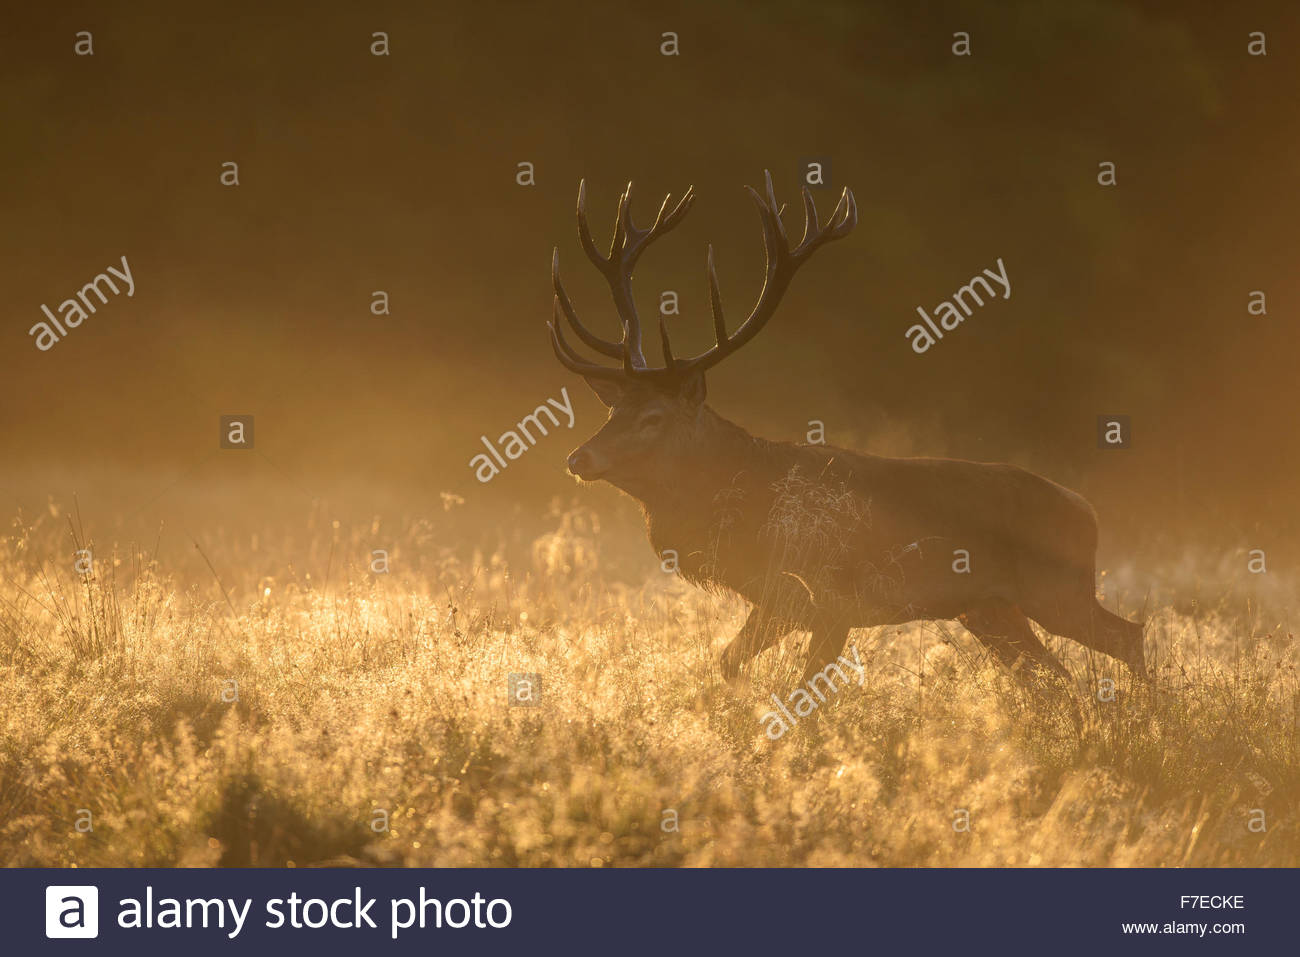 Red deer (Cervus elaphus), stag in first light, dewy meadow and fog, Zealand, Denmark - Stock Image